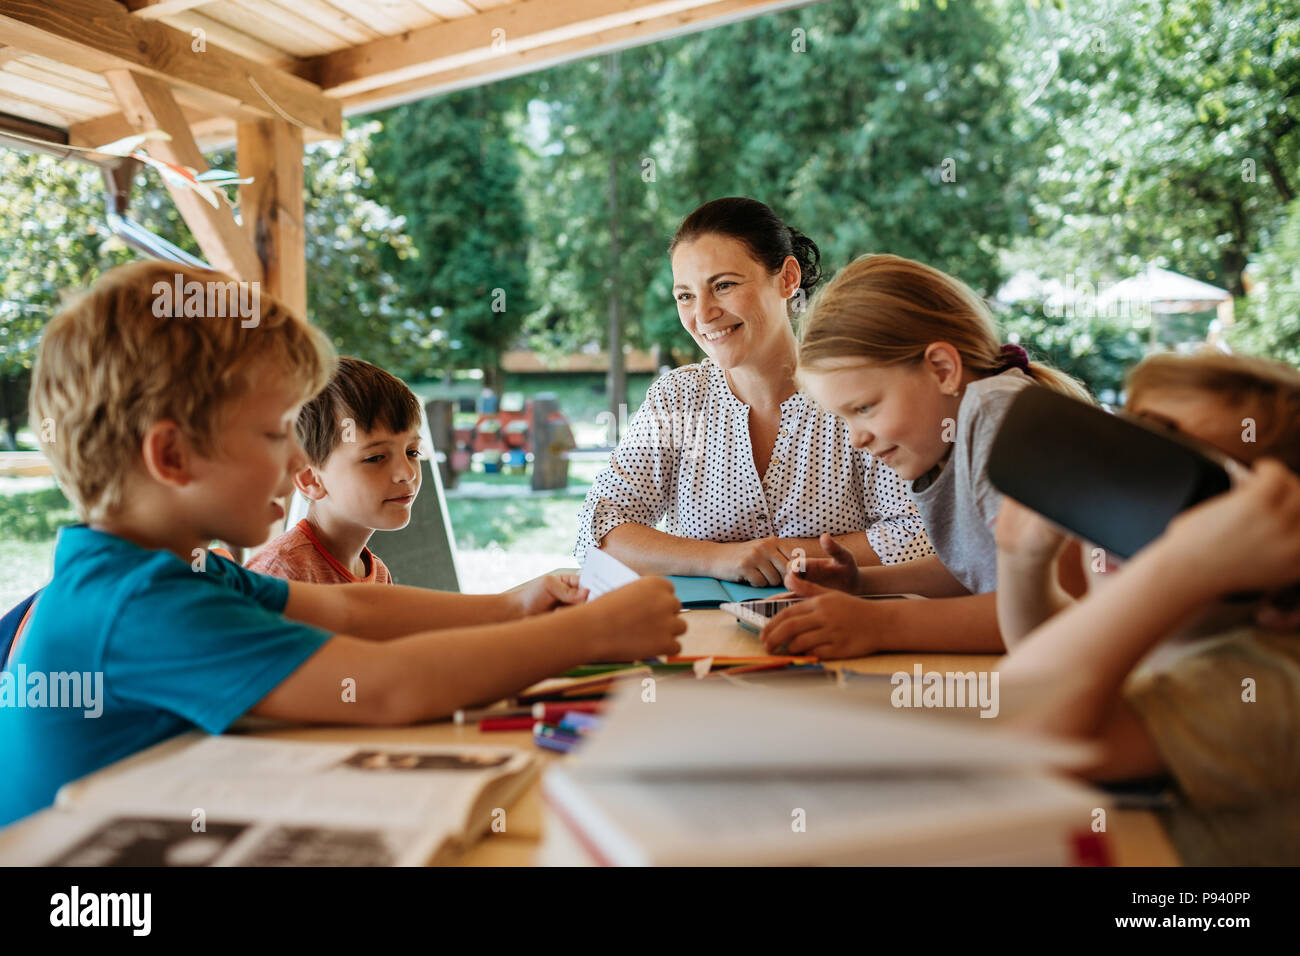 Group of young schoolchildren having a lesson. Children learning together with a teacher outside. - Stock Image